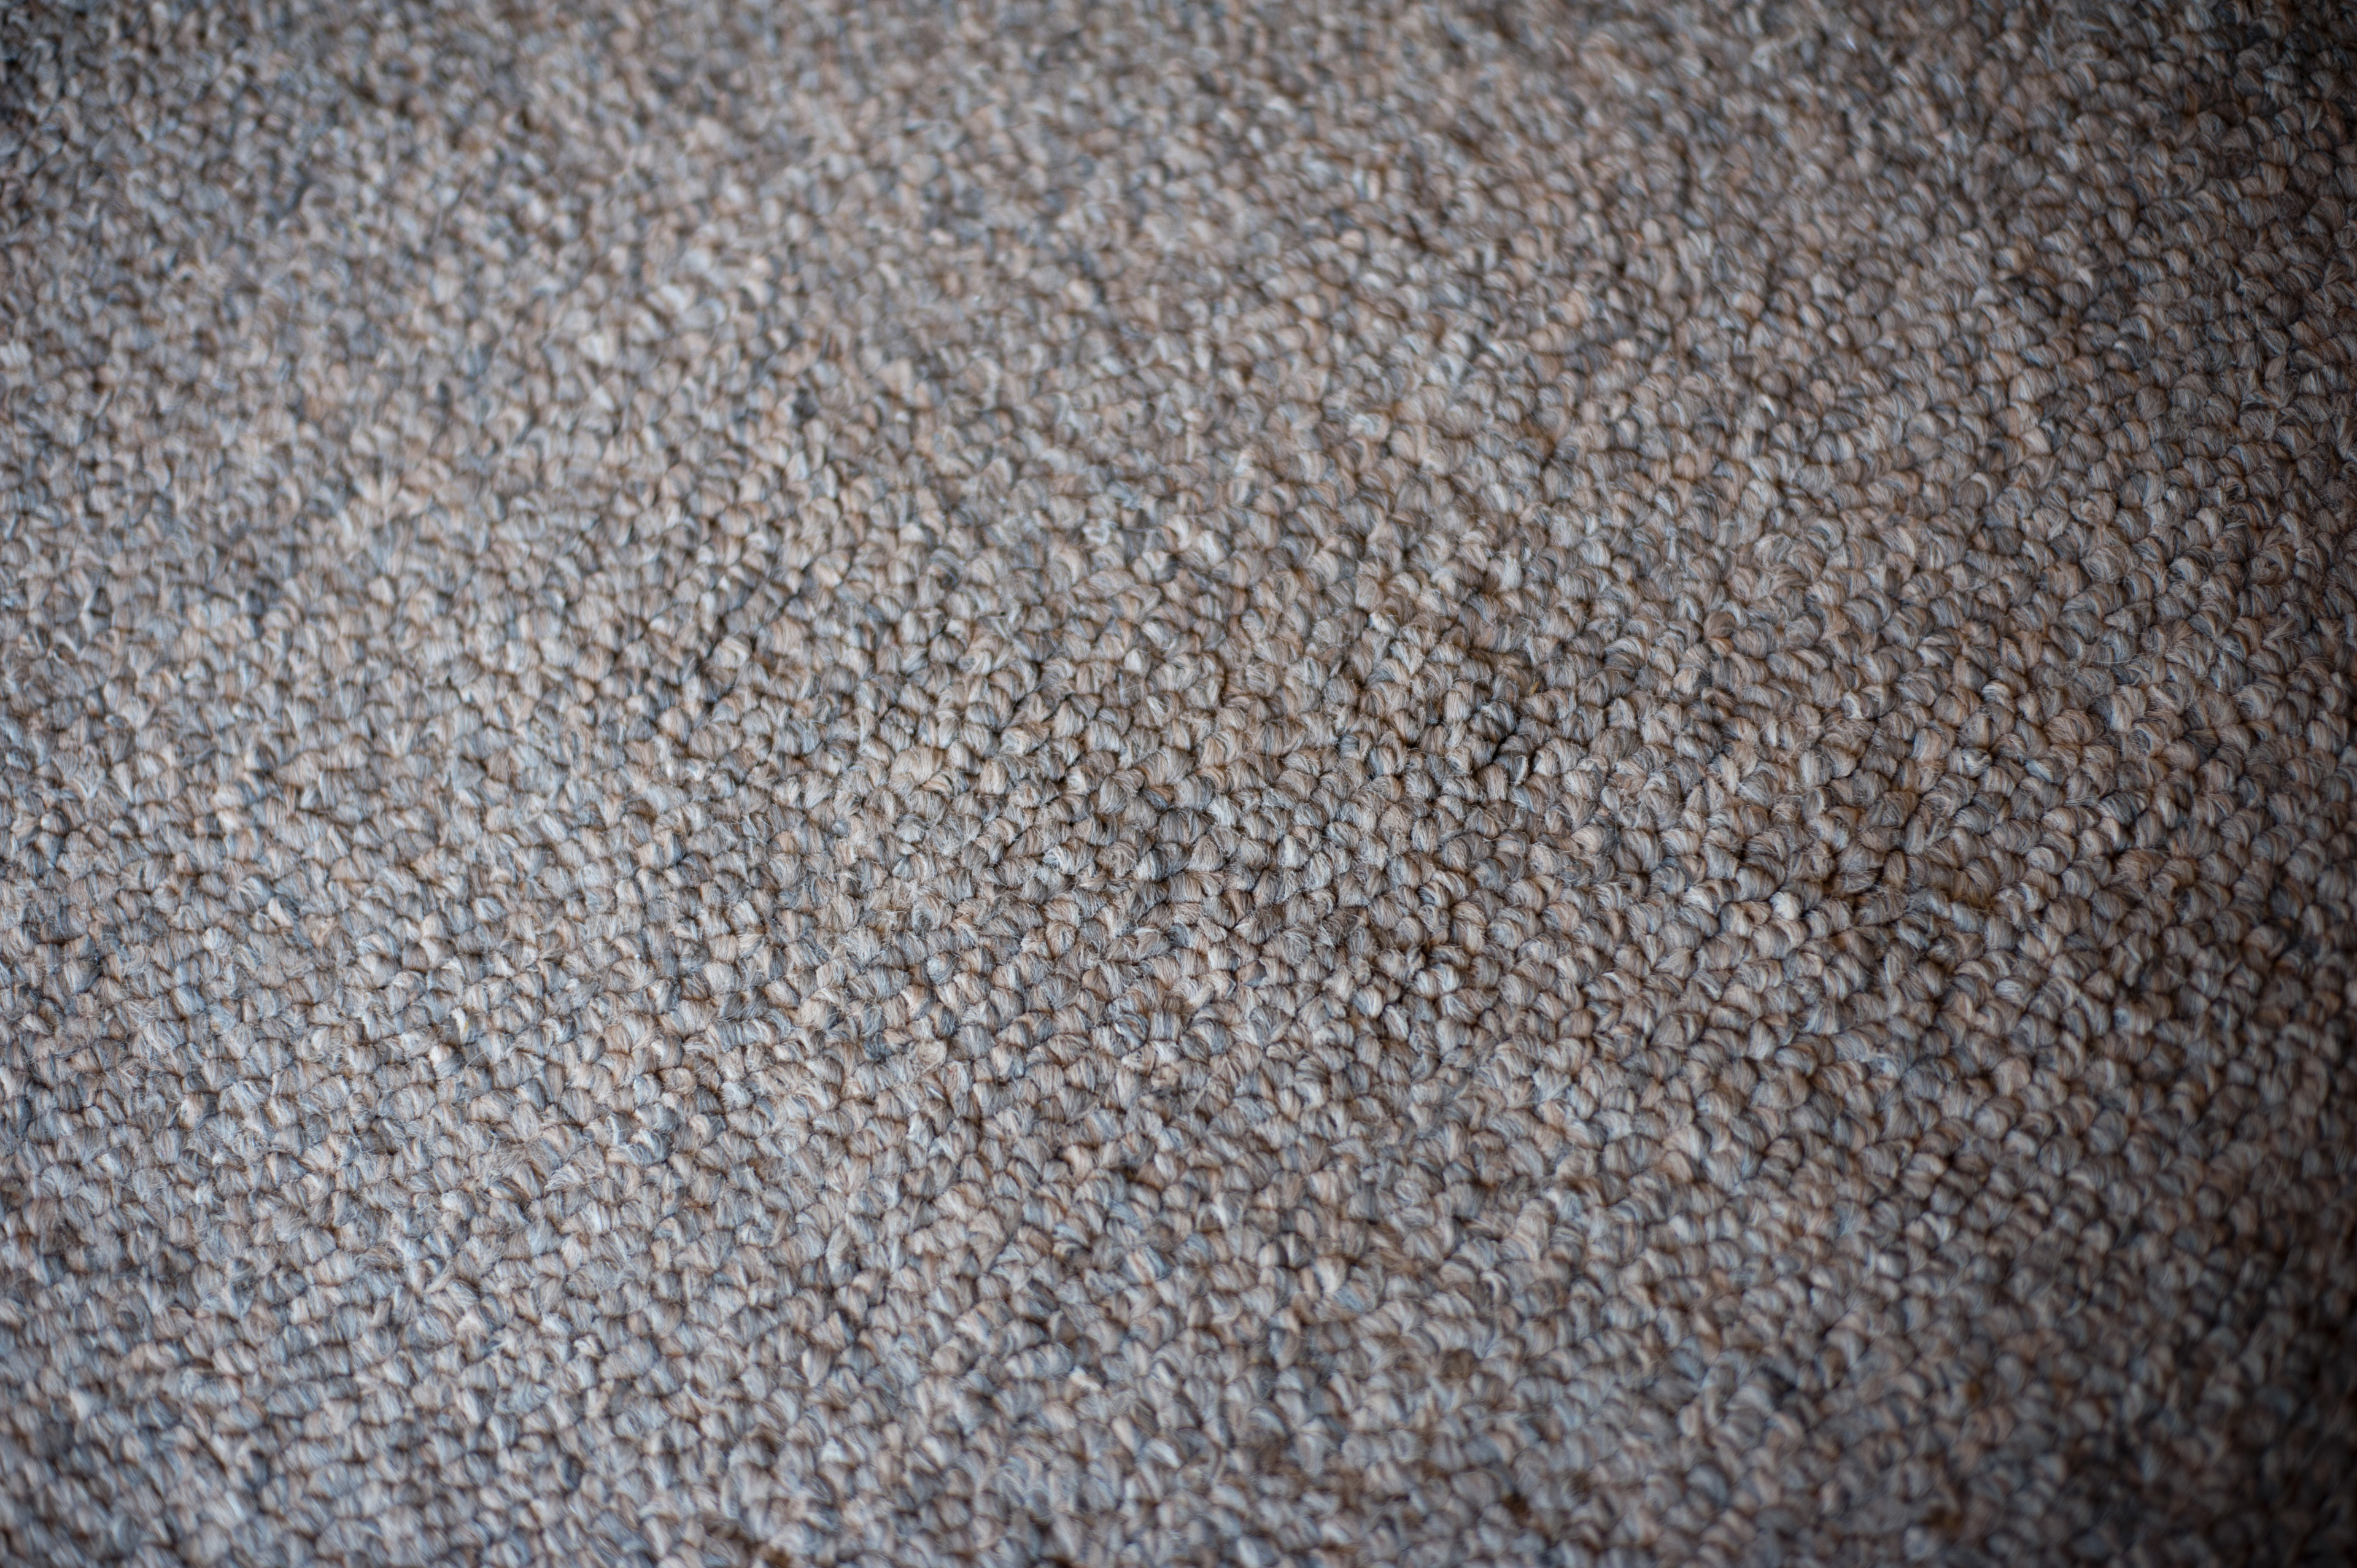 Close up Clean Textured Gray Wool Carpet for Wallpaper Backgrounds, Emphasizing Copy Space on a High Angle Shot.